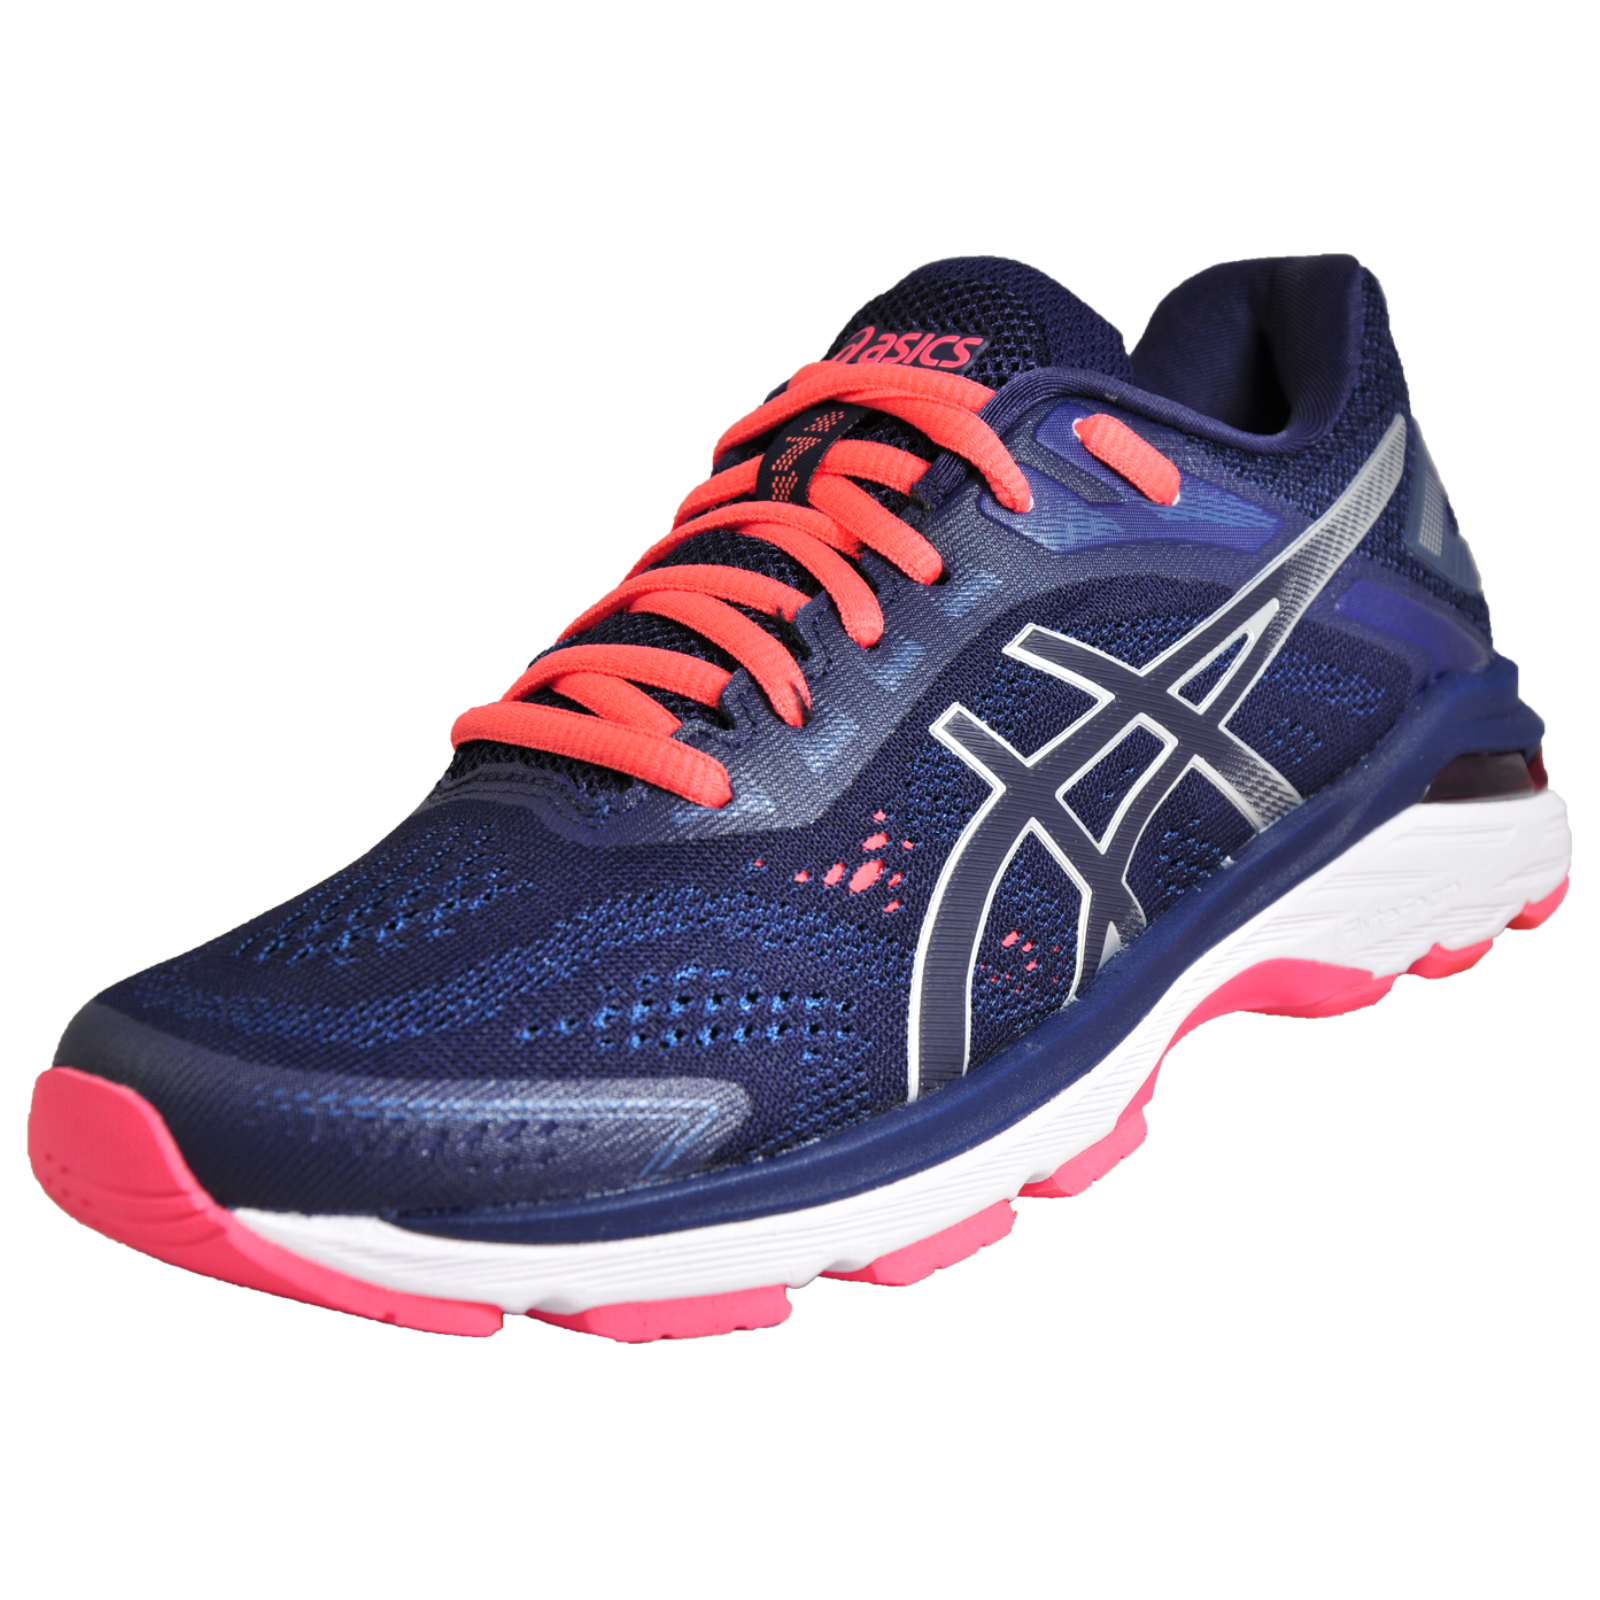 d34d4966687e Details about Asics GT 2000 7 Womens Premium Elite Running Shoes Trainers  Blue New In 2019